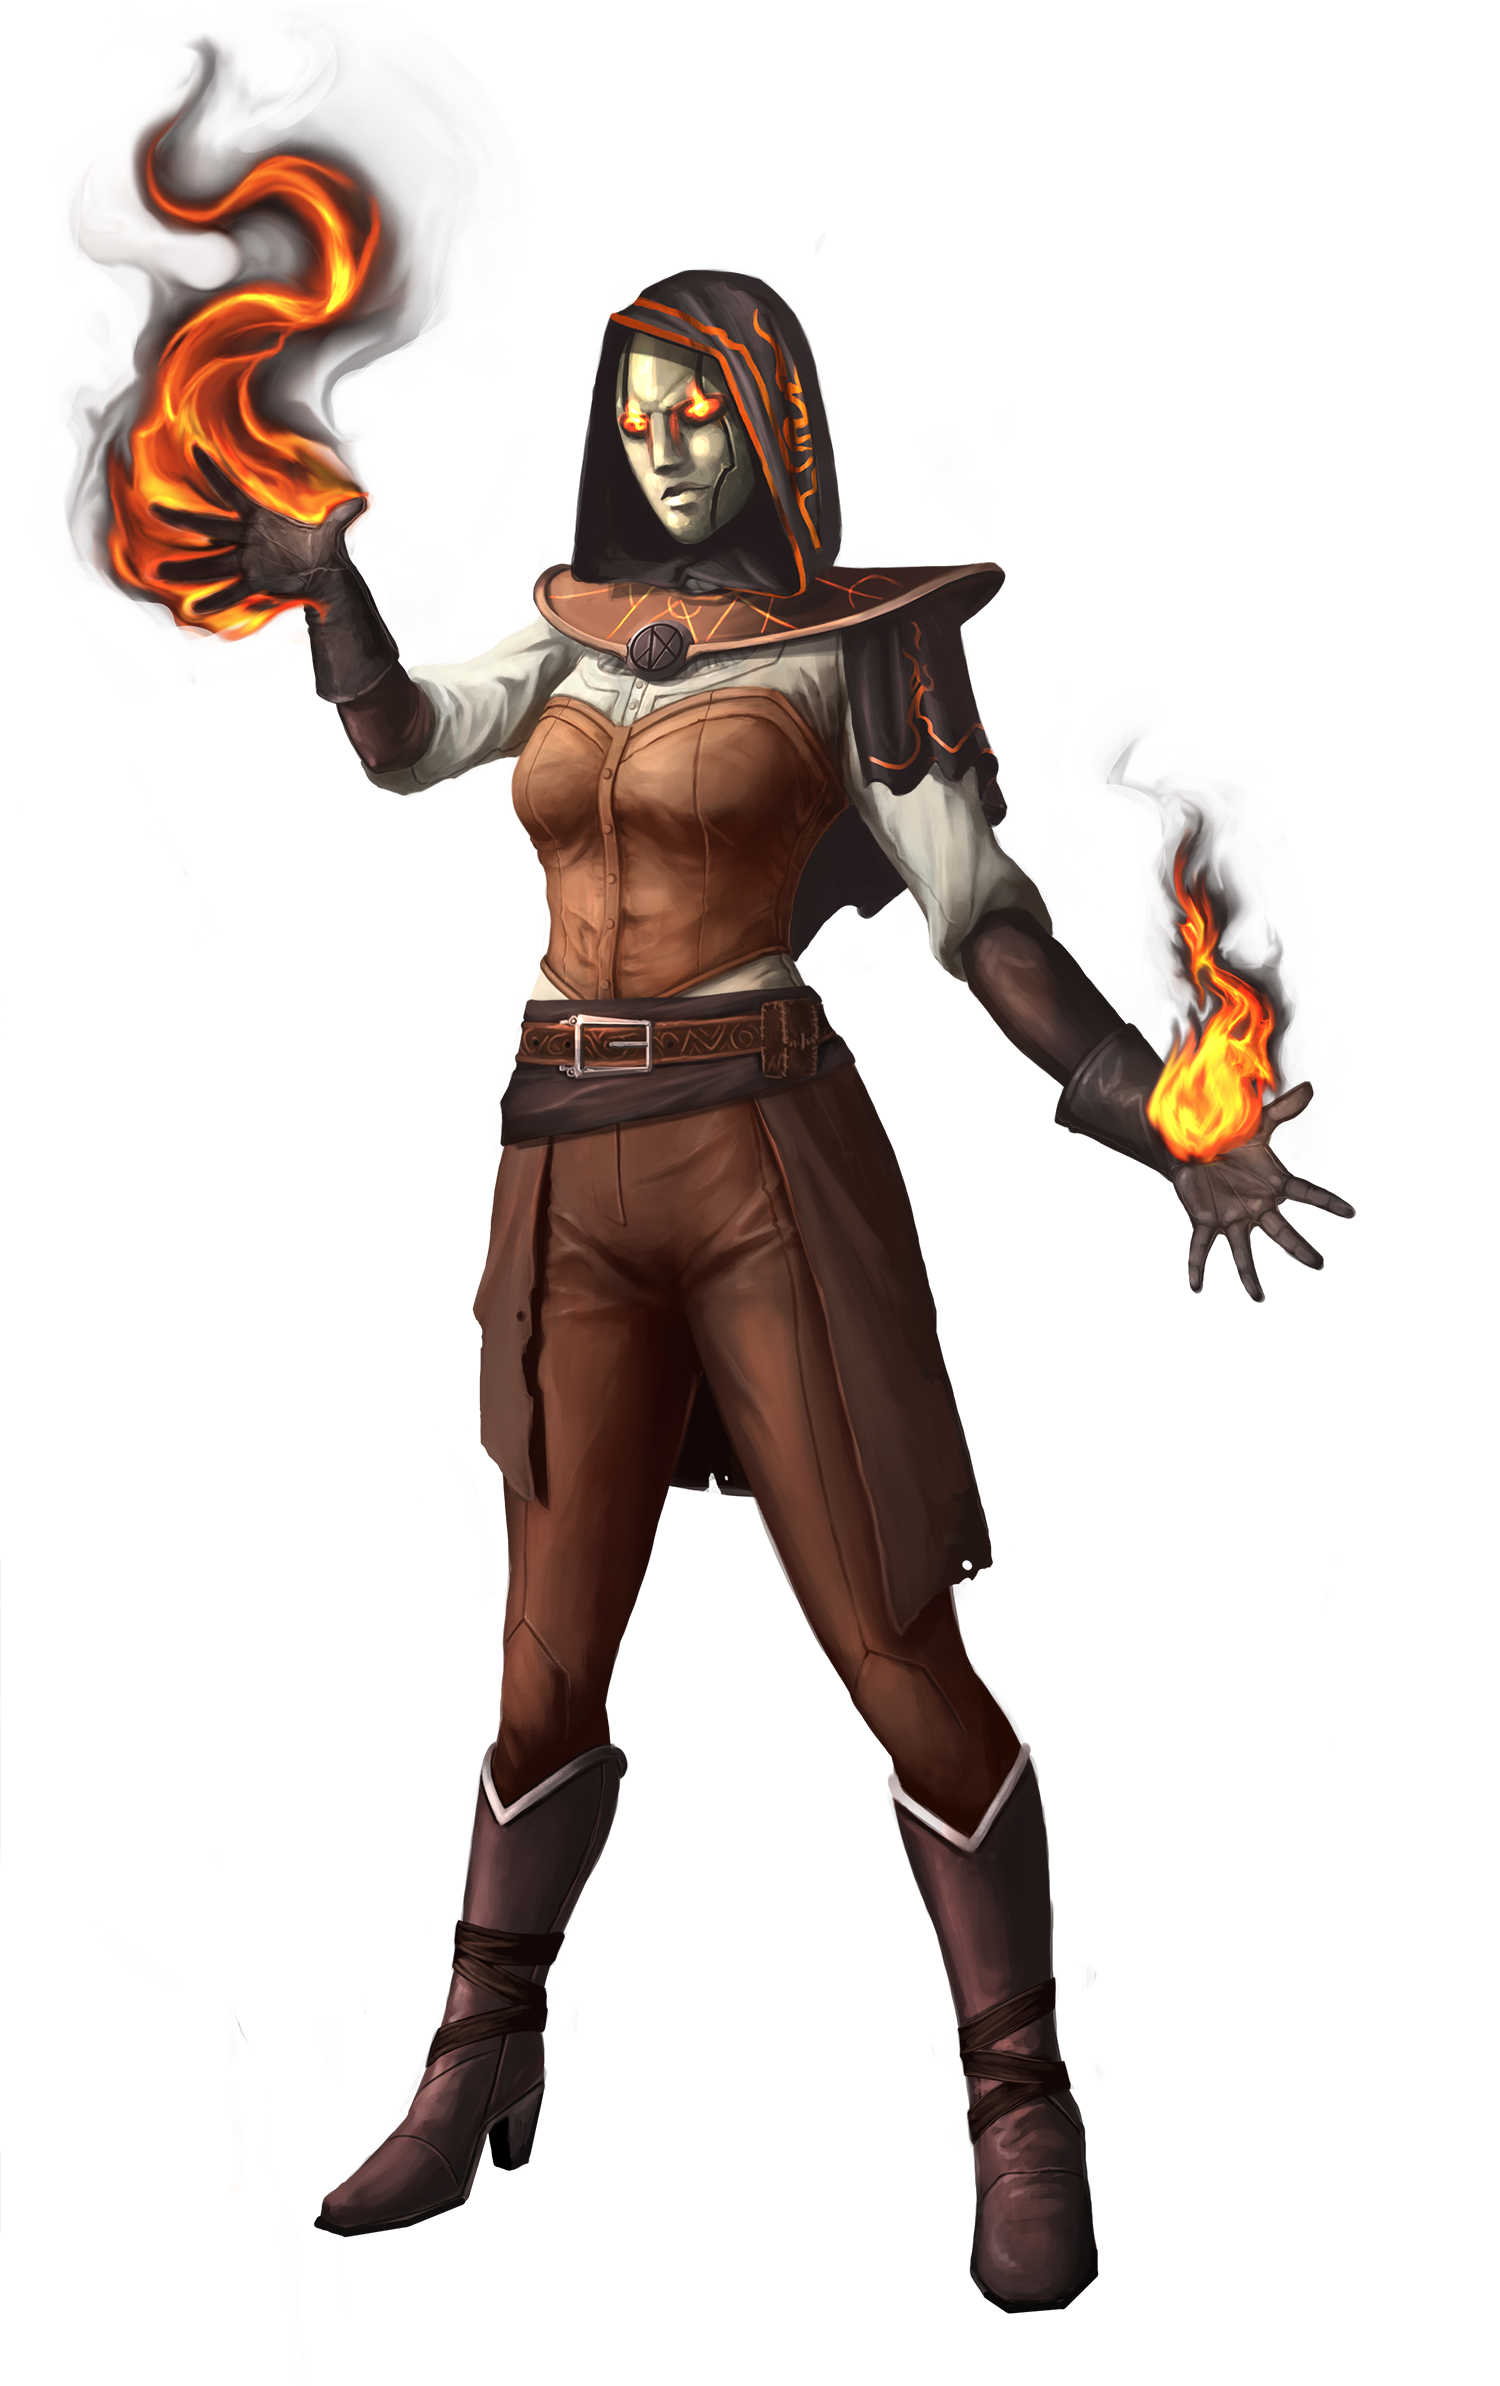 Mage_Female_Fire.png